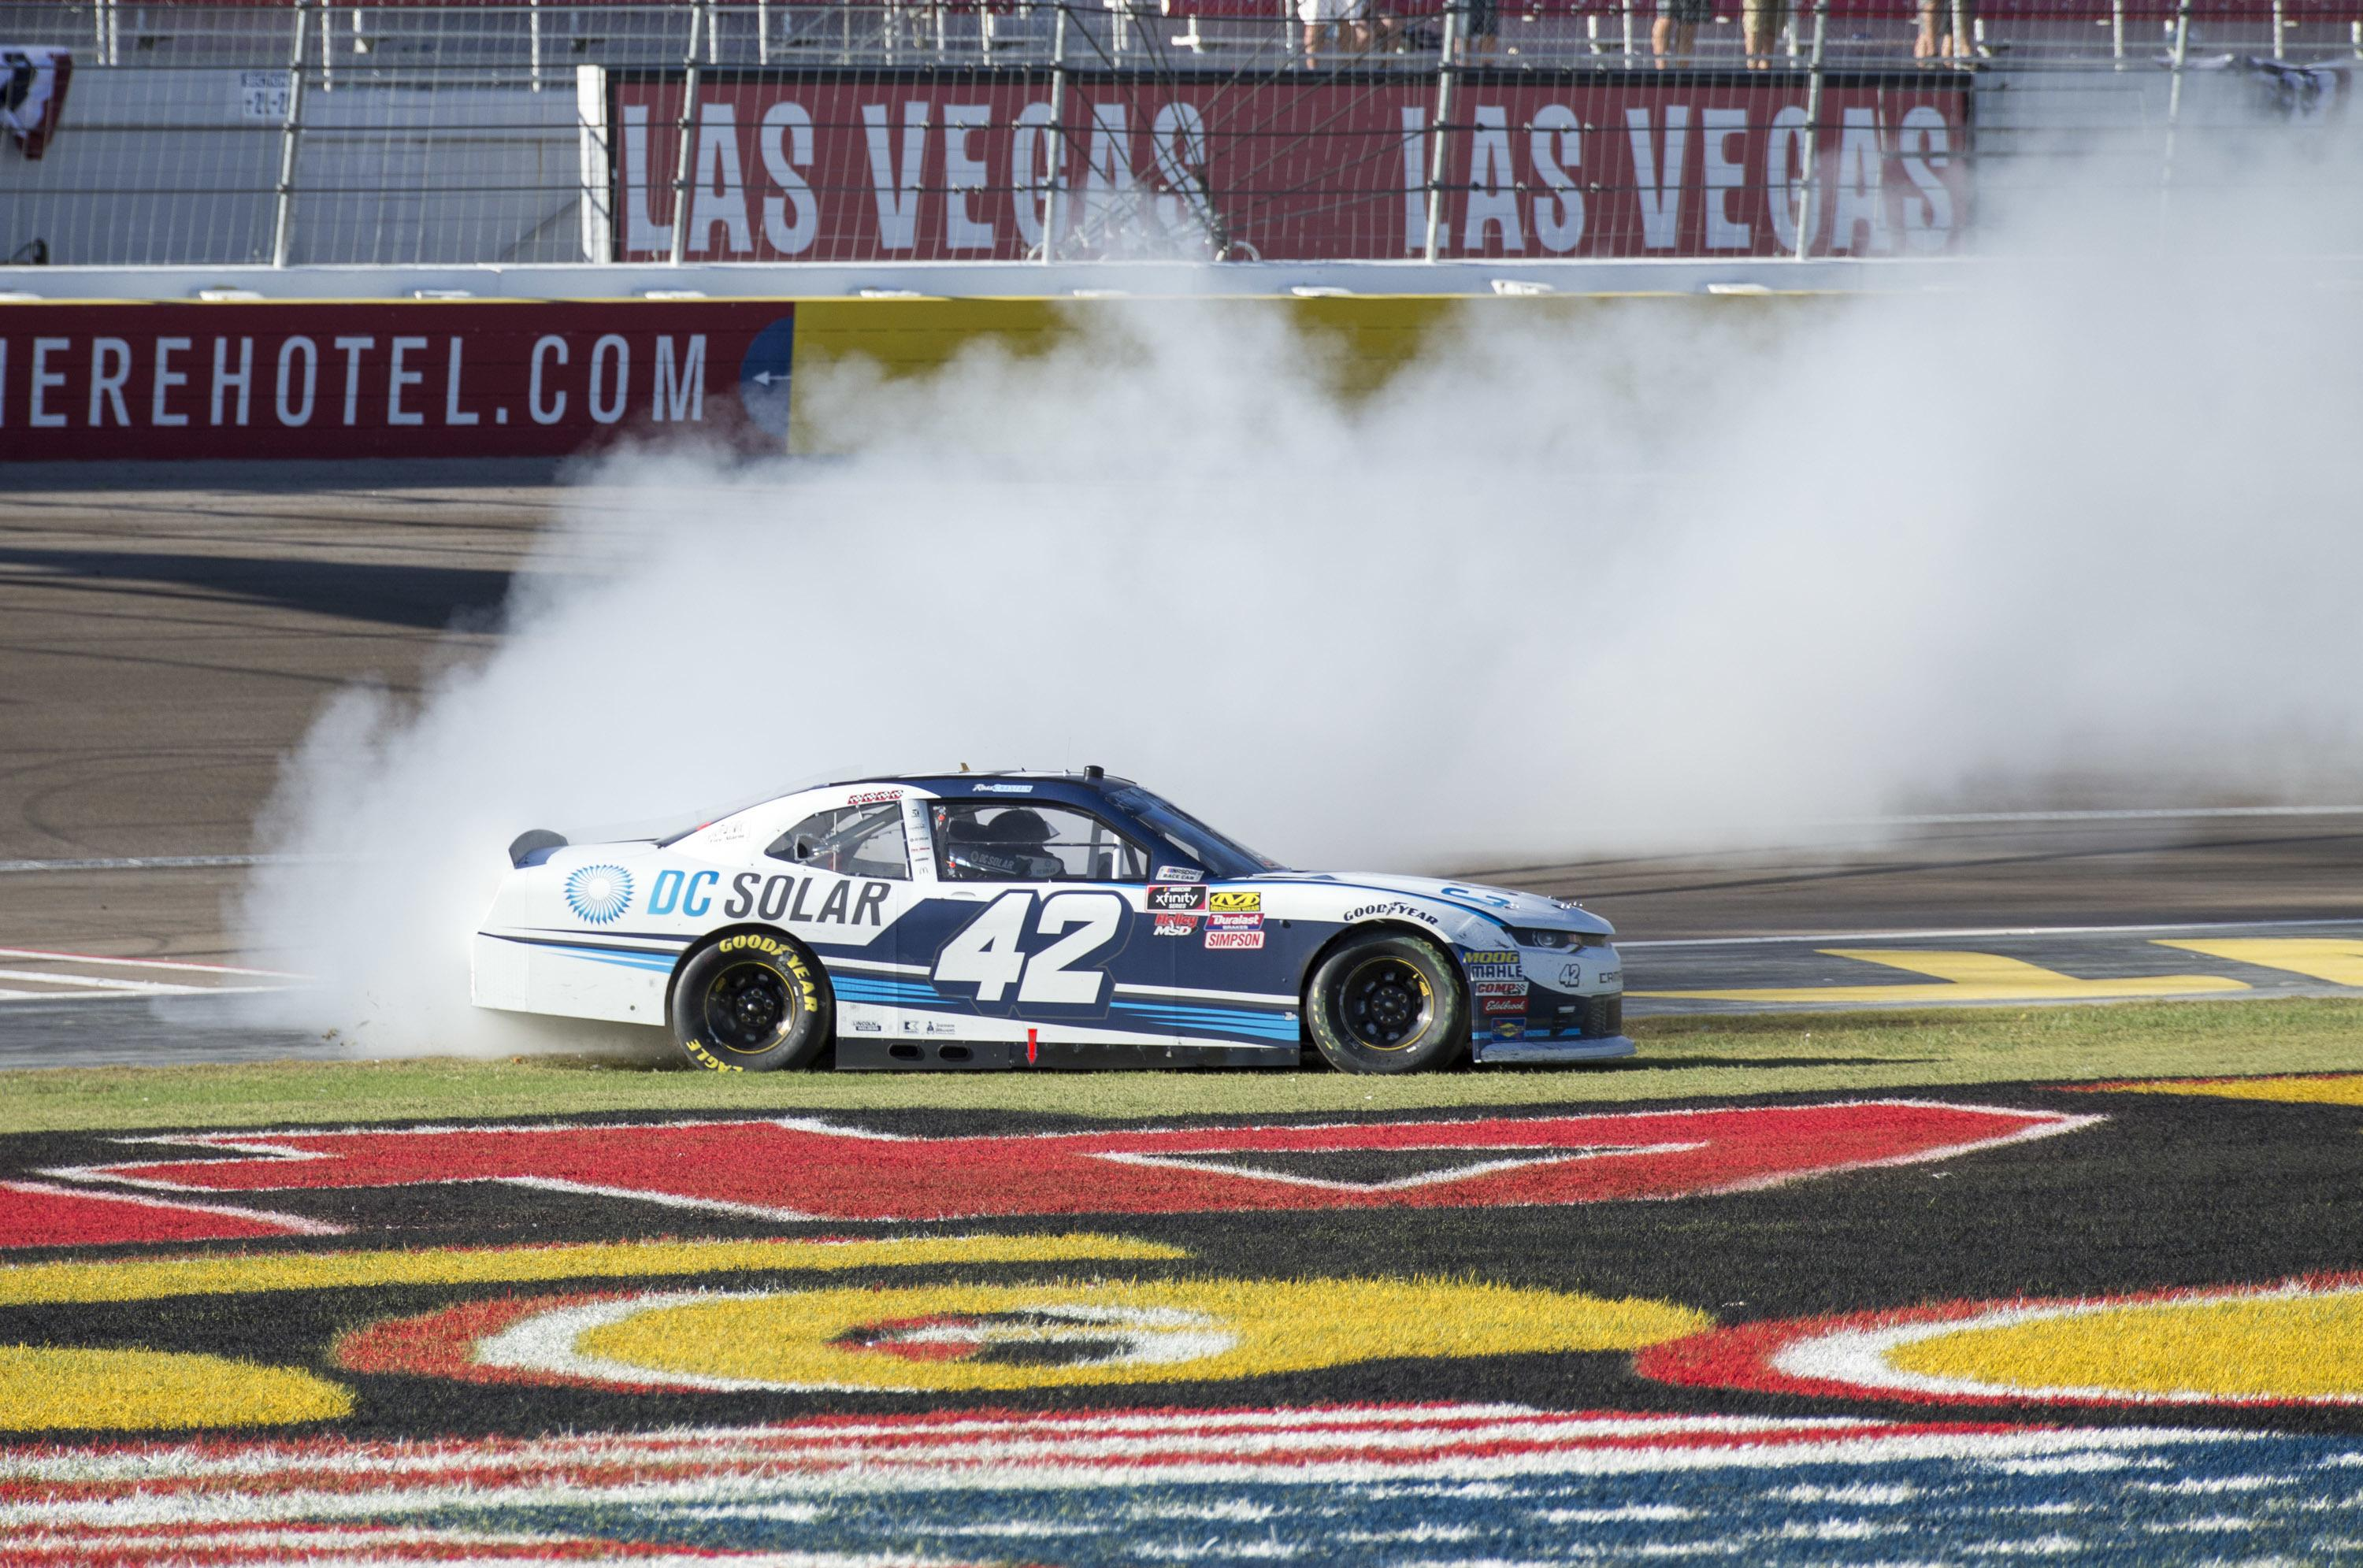 Ross Chastain earns 1st Xfinity win, holding off Justin